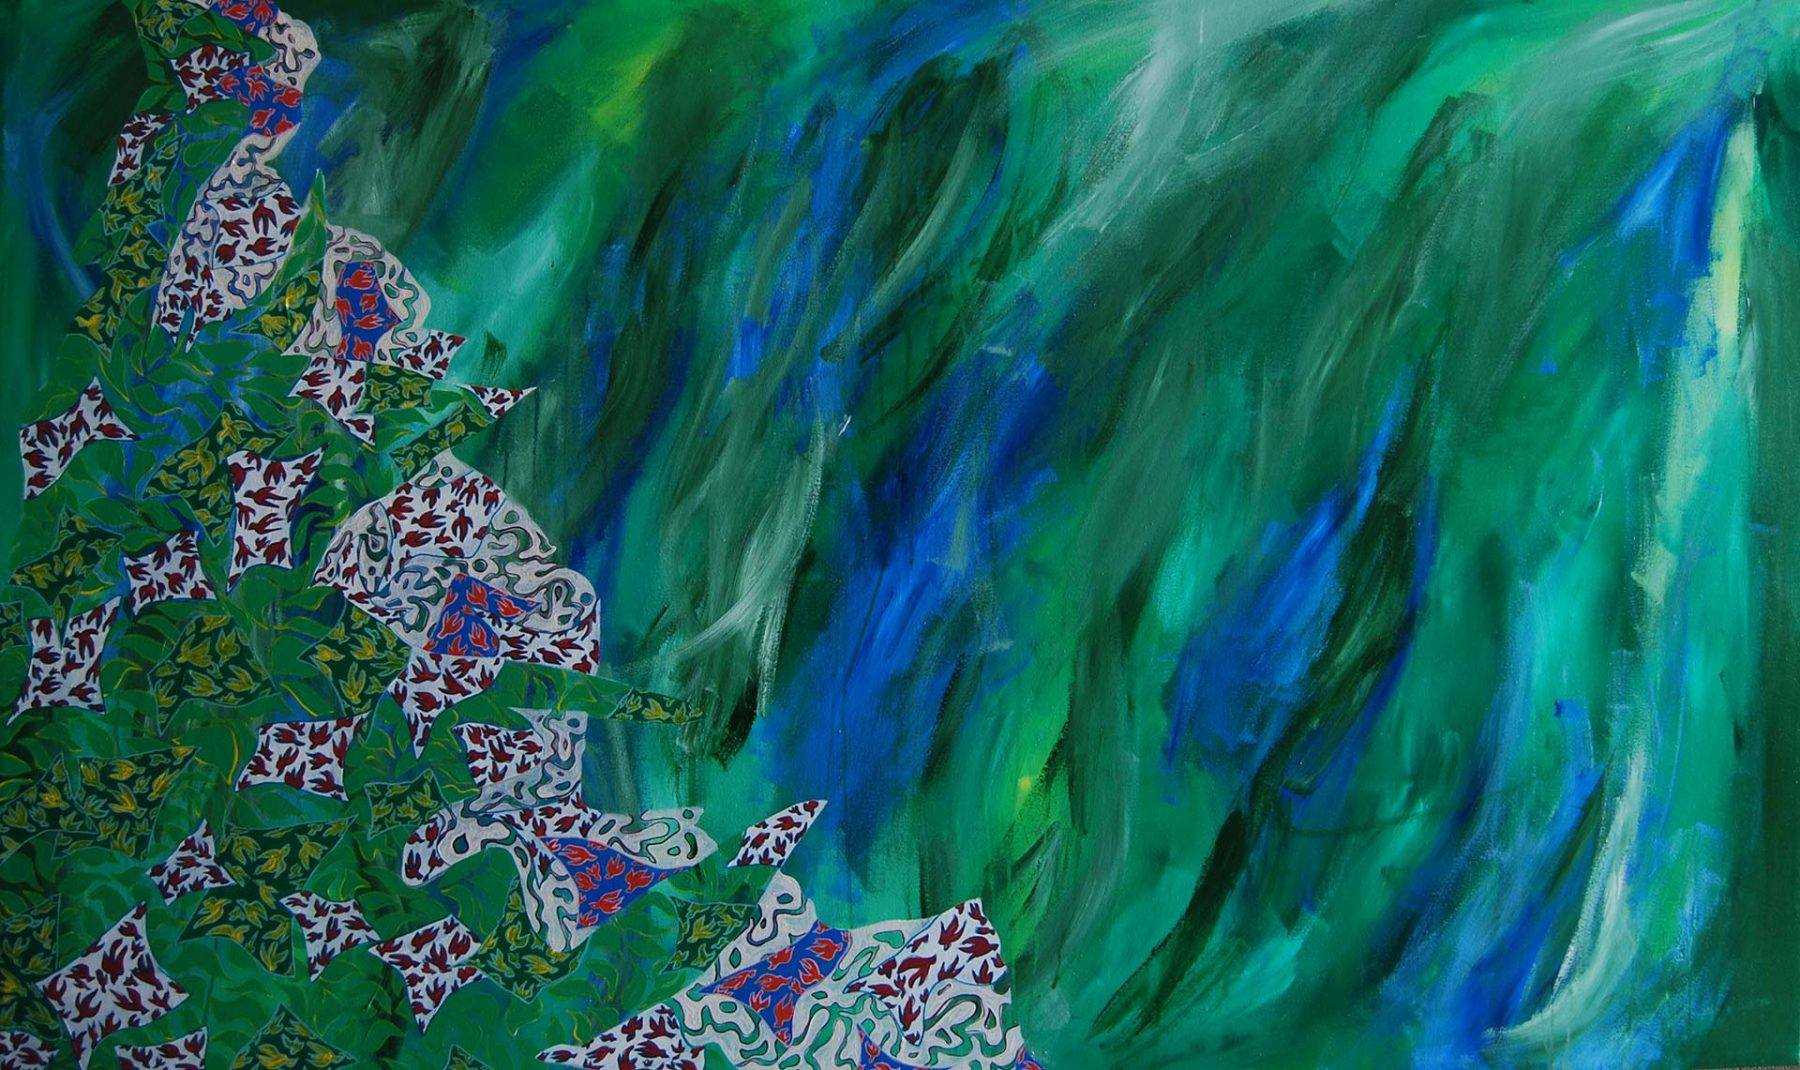 Spring Fajr Landscape (2008) acrylic on canvas, 0.91H x 1.52W meters